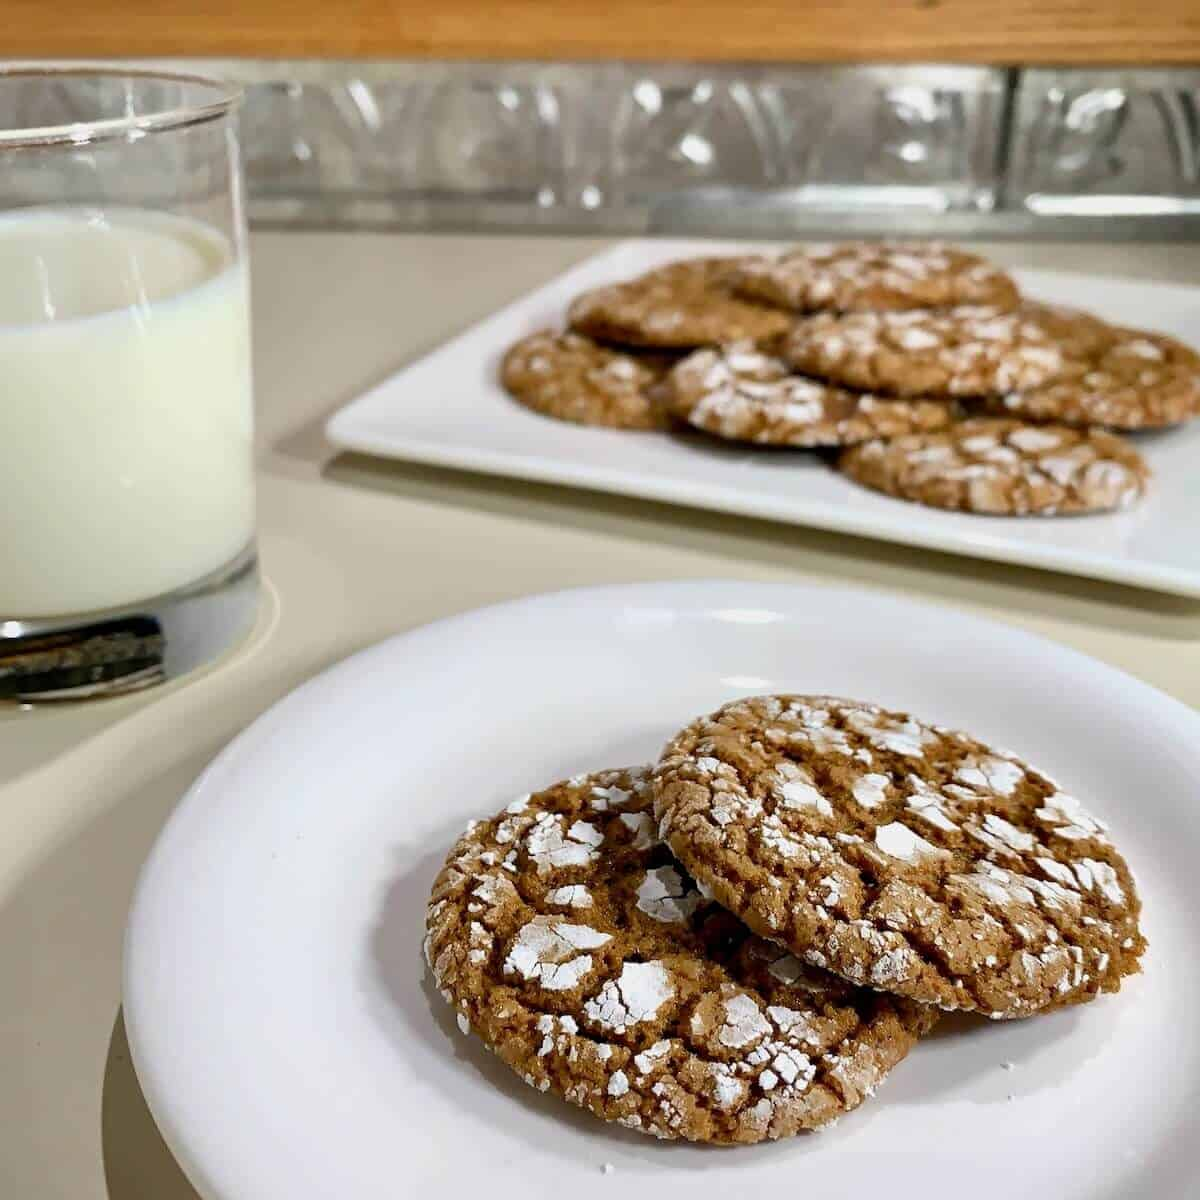 Molasses cookies on a white plate with more cookies and a glass of milk in background.